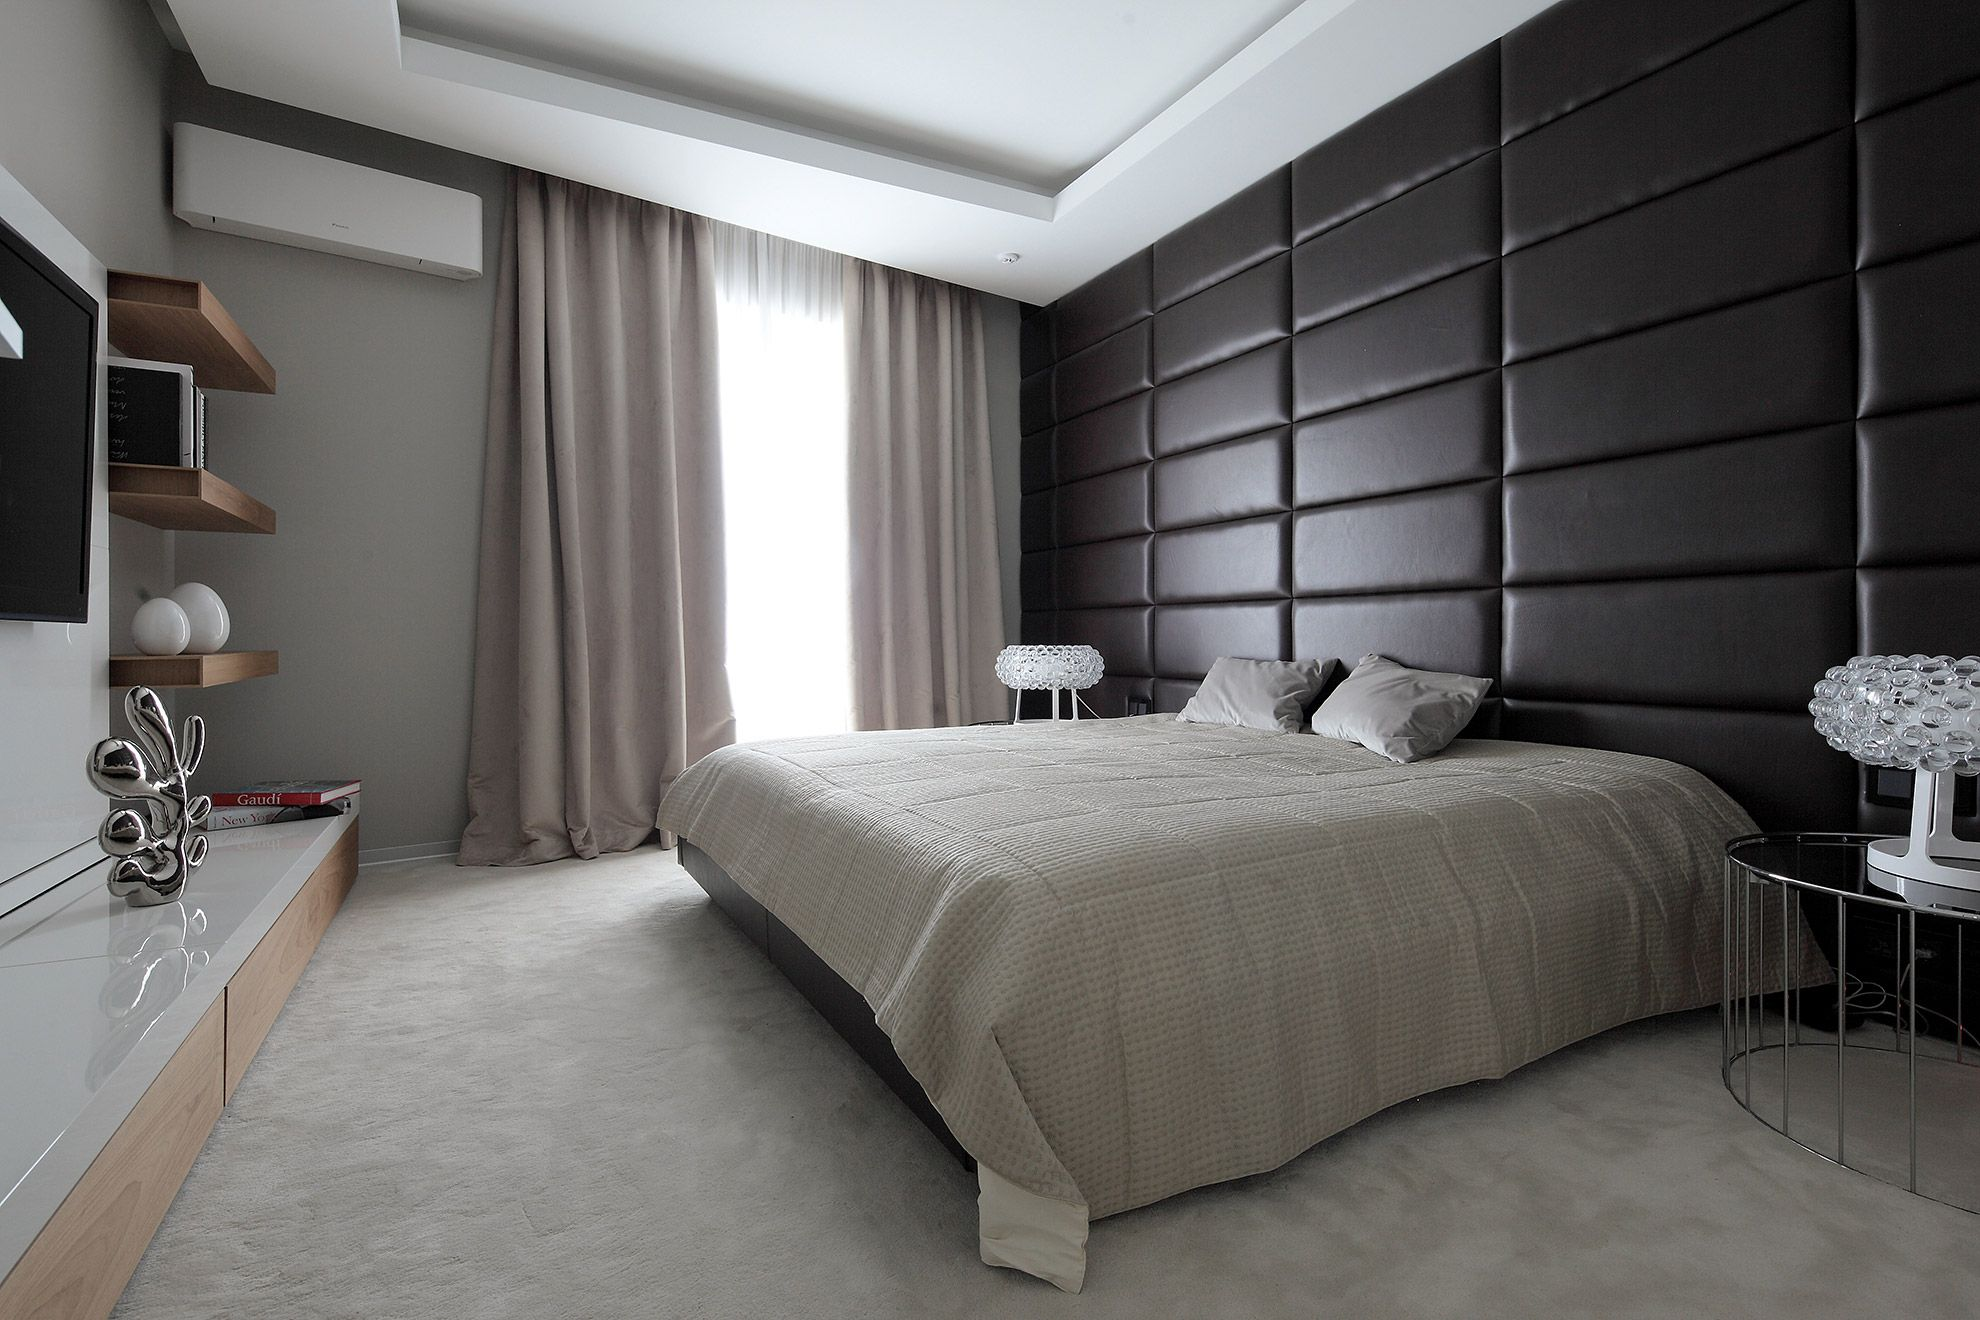 Faux leather panels in a bedroom | Bedrooms | Pinterest | Bedrooms ...